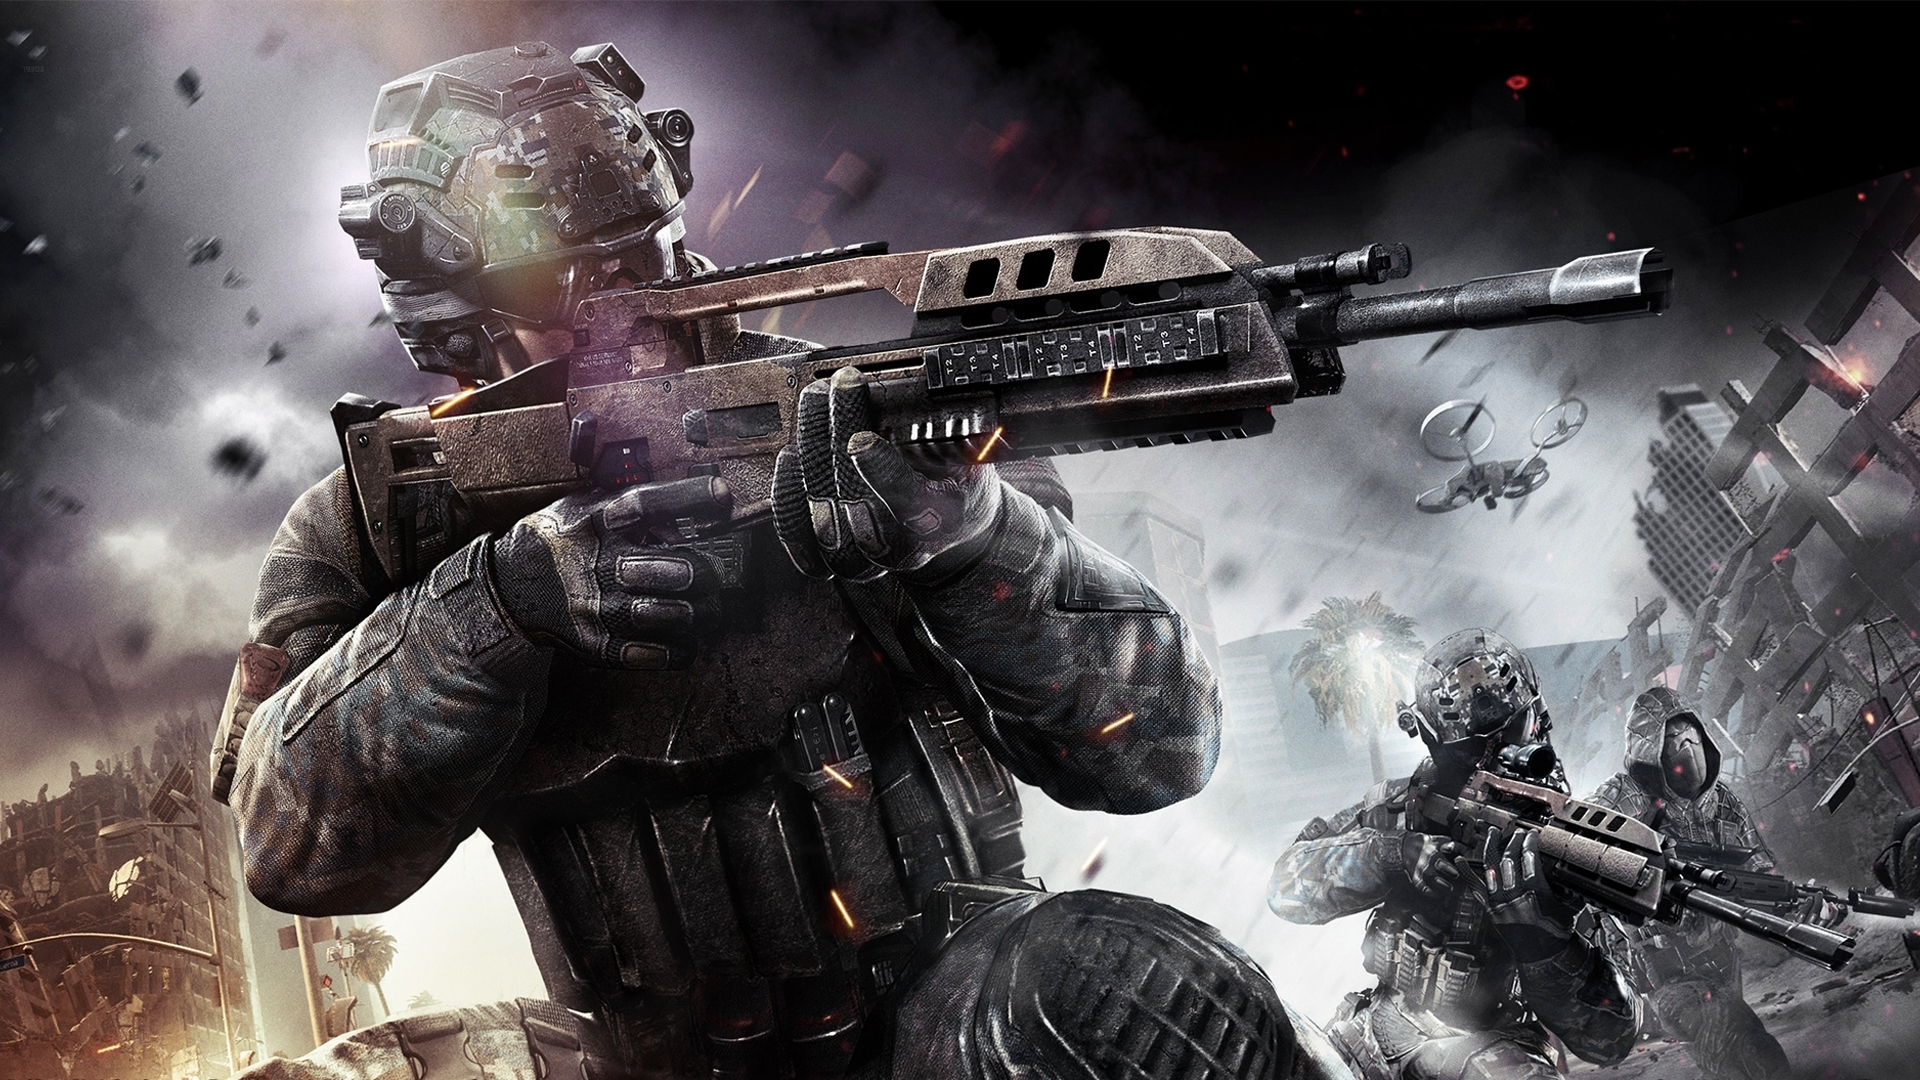 download call of duty black ops 2 video game hd wallpapers wide high